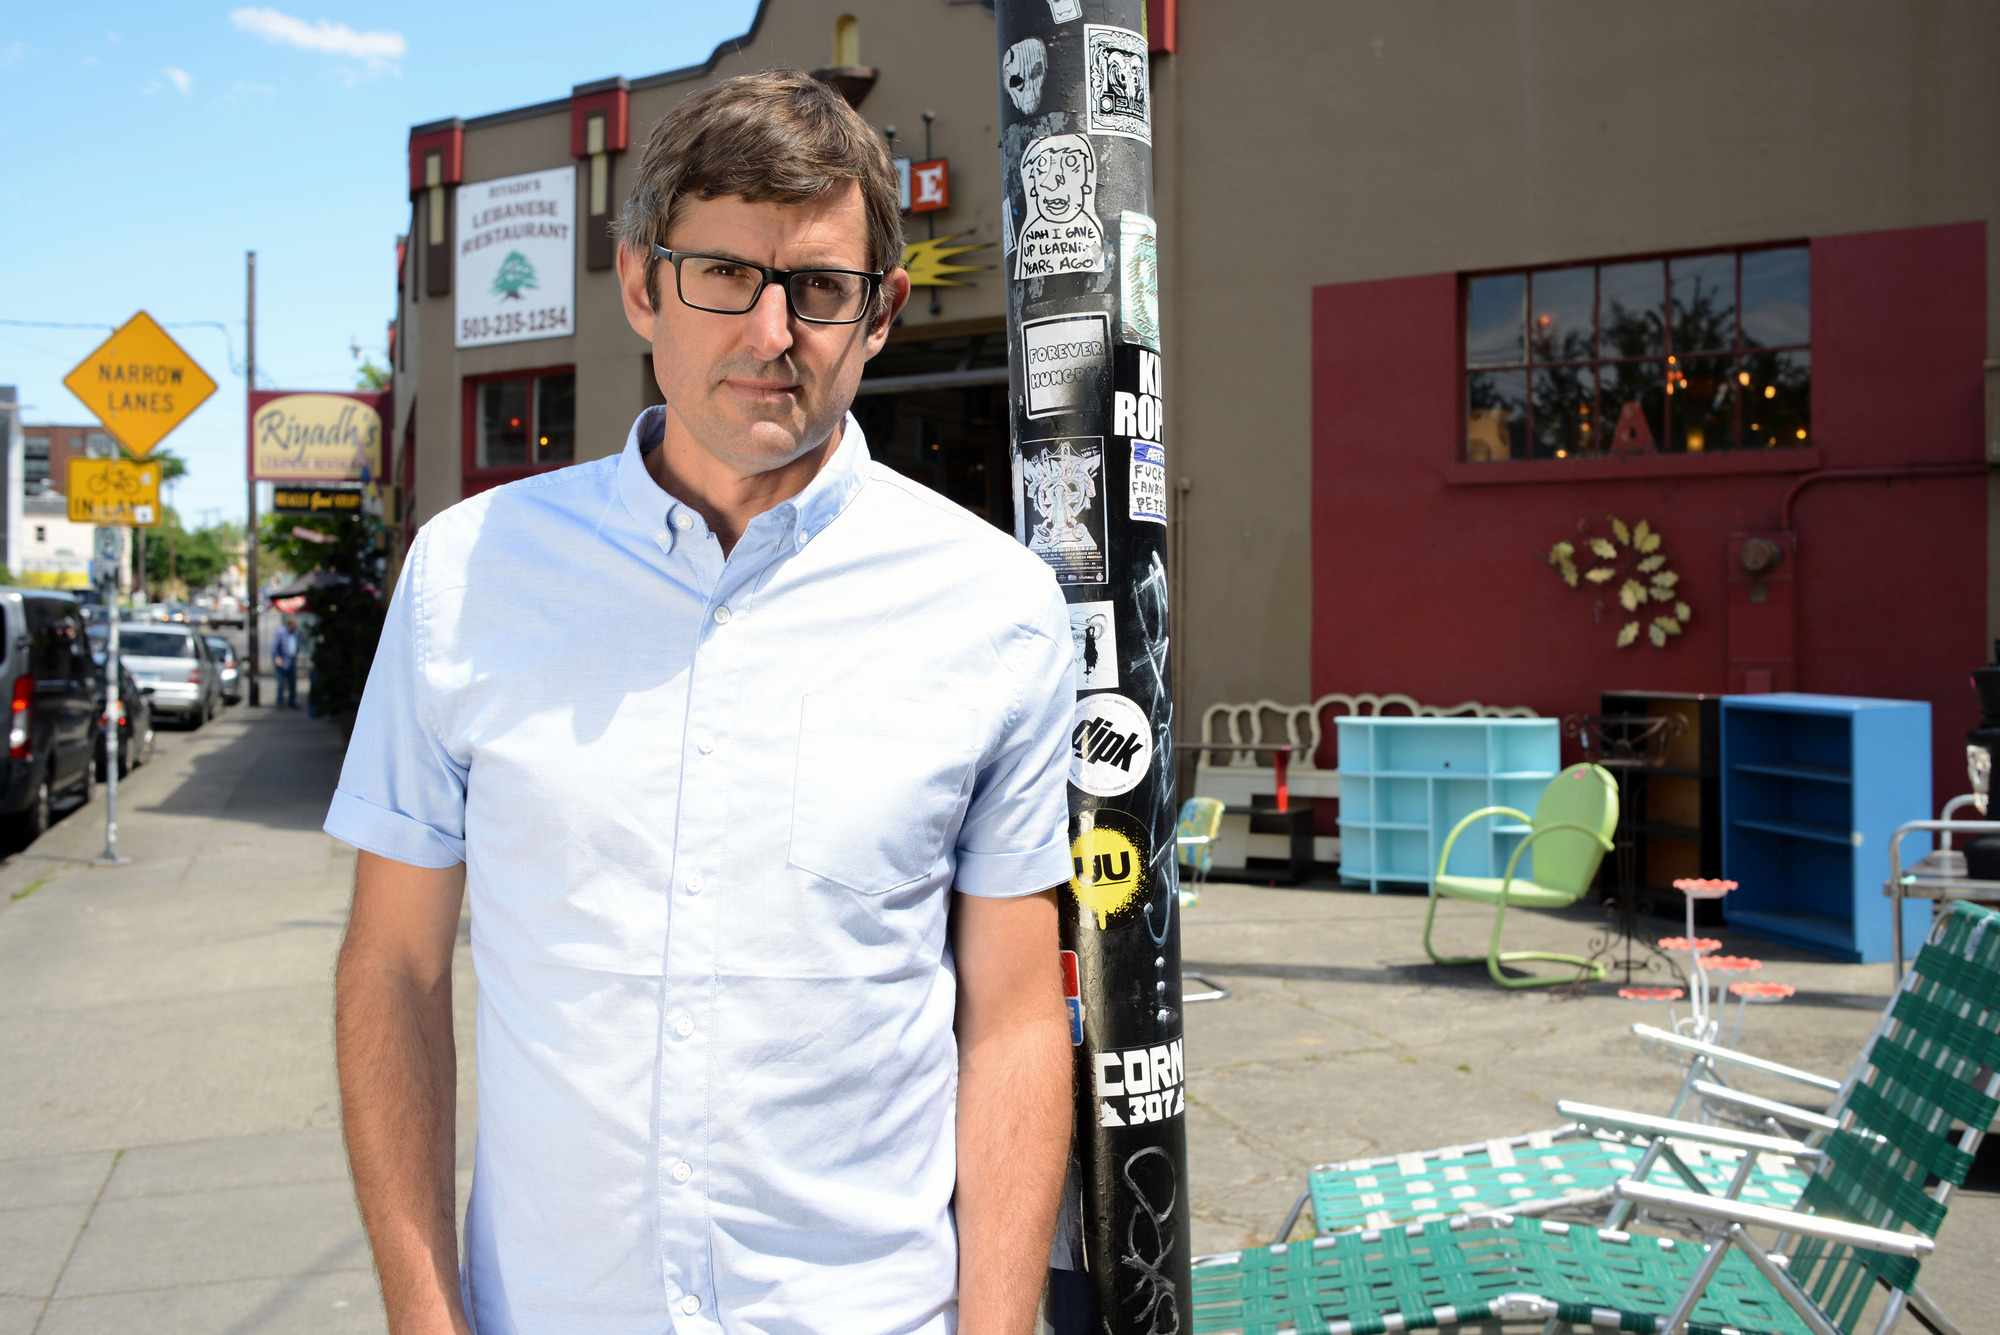 Louis Theroux in new BBC series Altered States (BBC/YouTube)